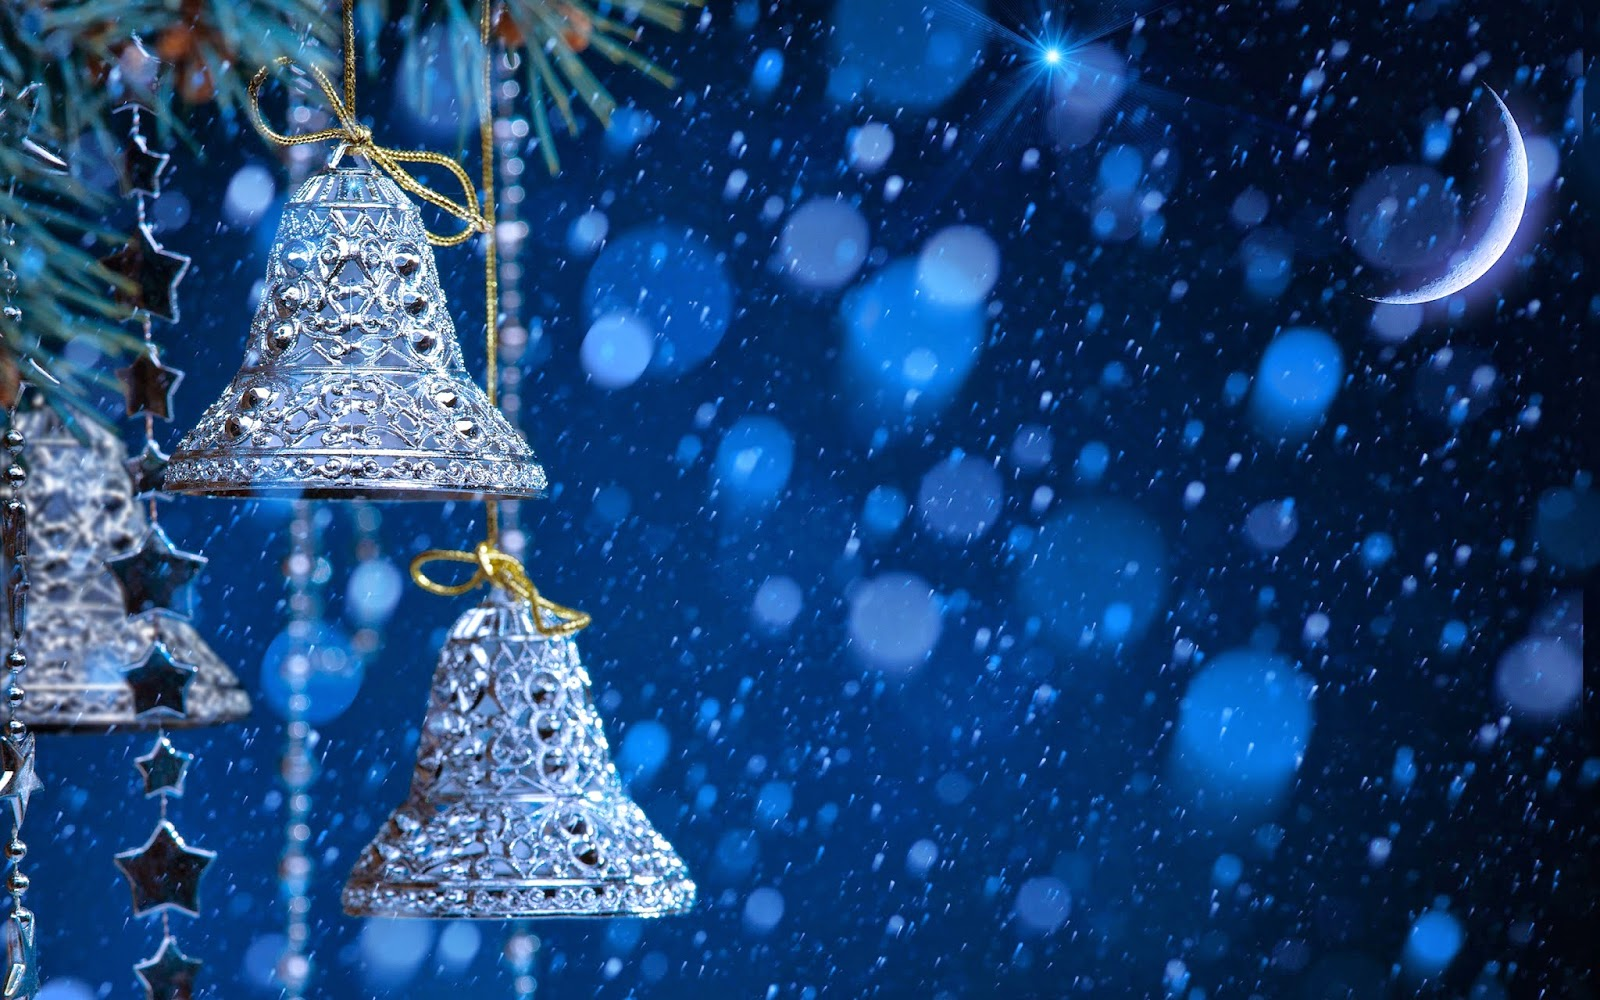 Christmas Background Hd.Merry Christmas Jingle Bells Silver With Snow Fall Blue